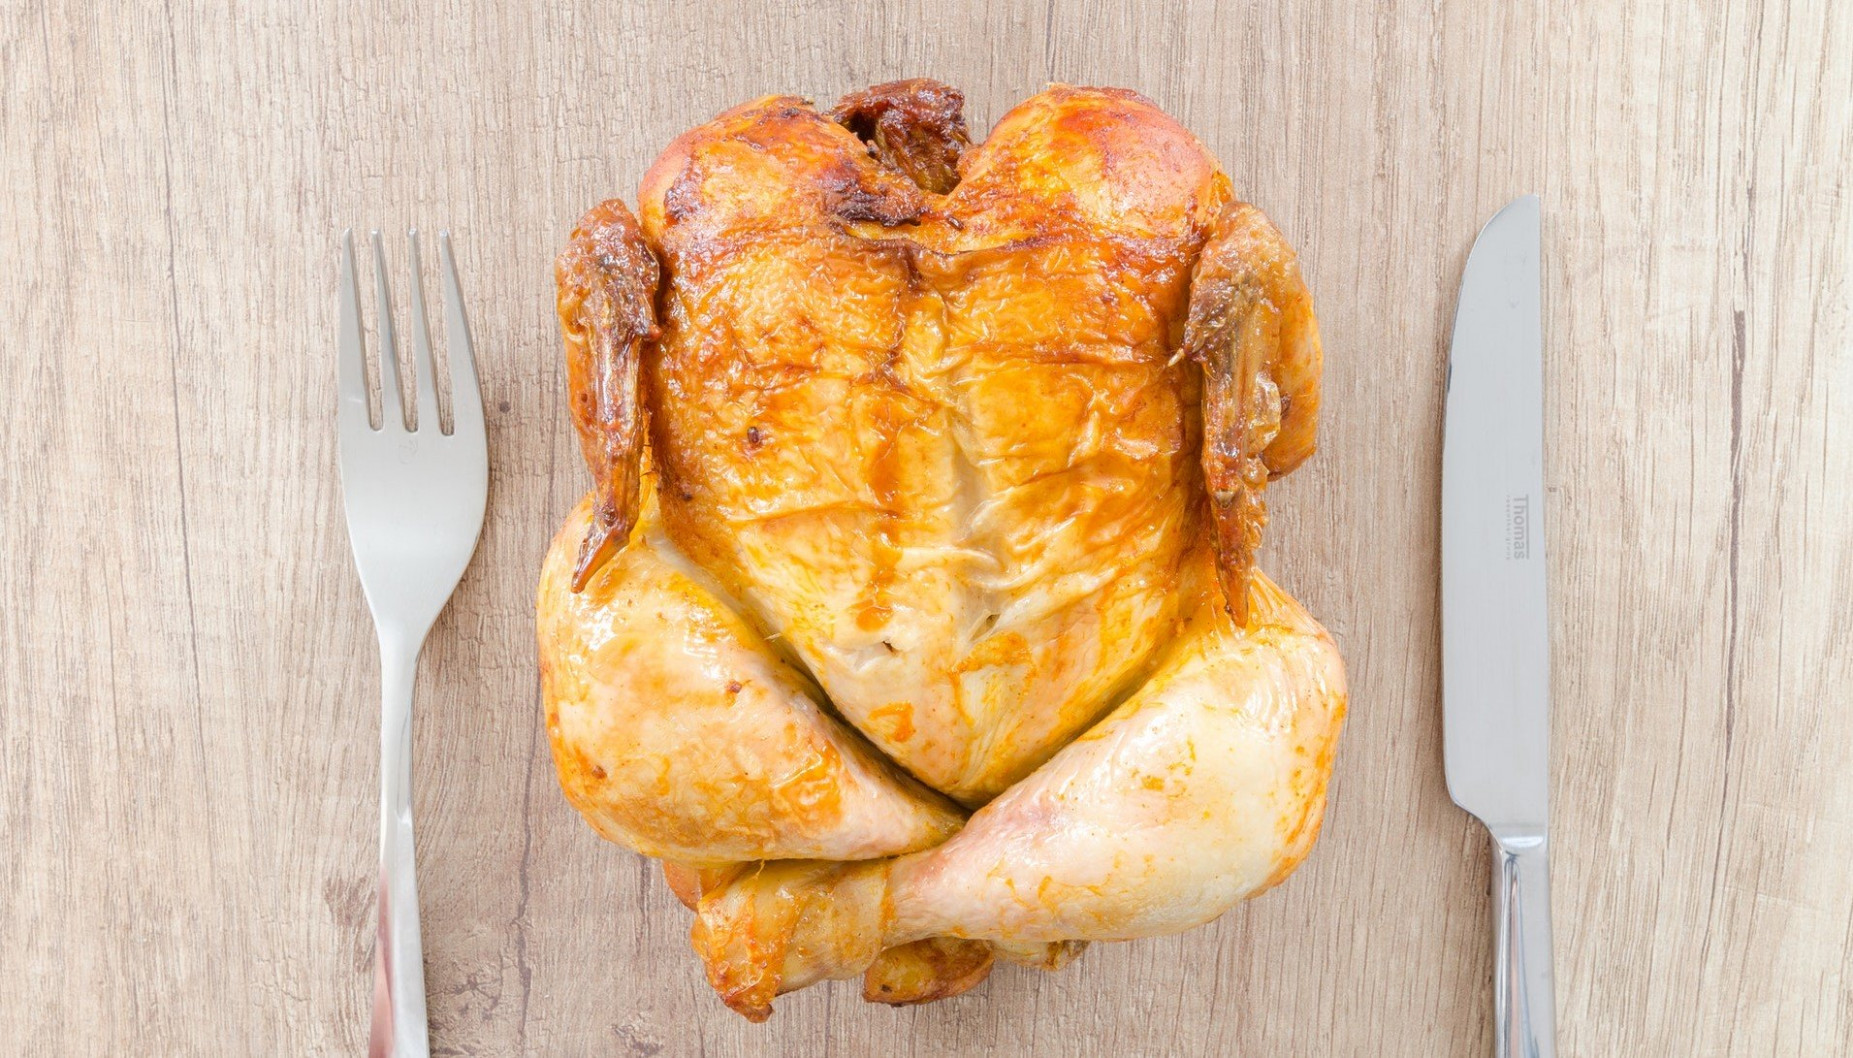 White Meat vs. Dark Meat Chicken: What's the Difference?